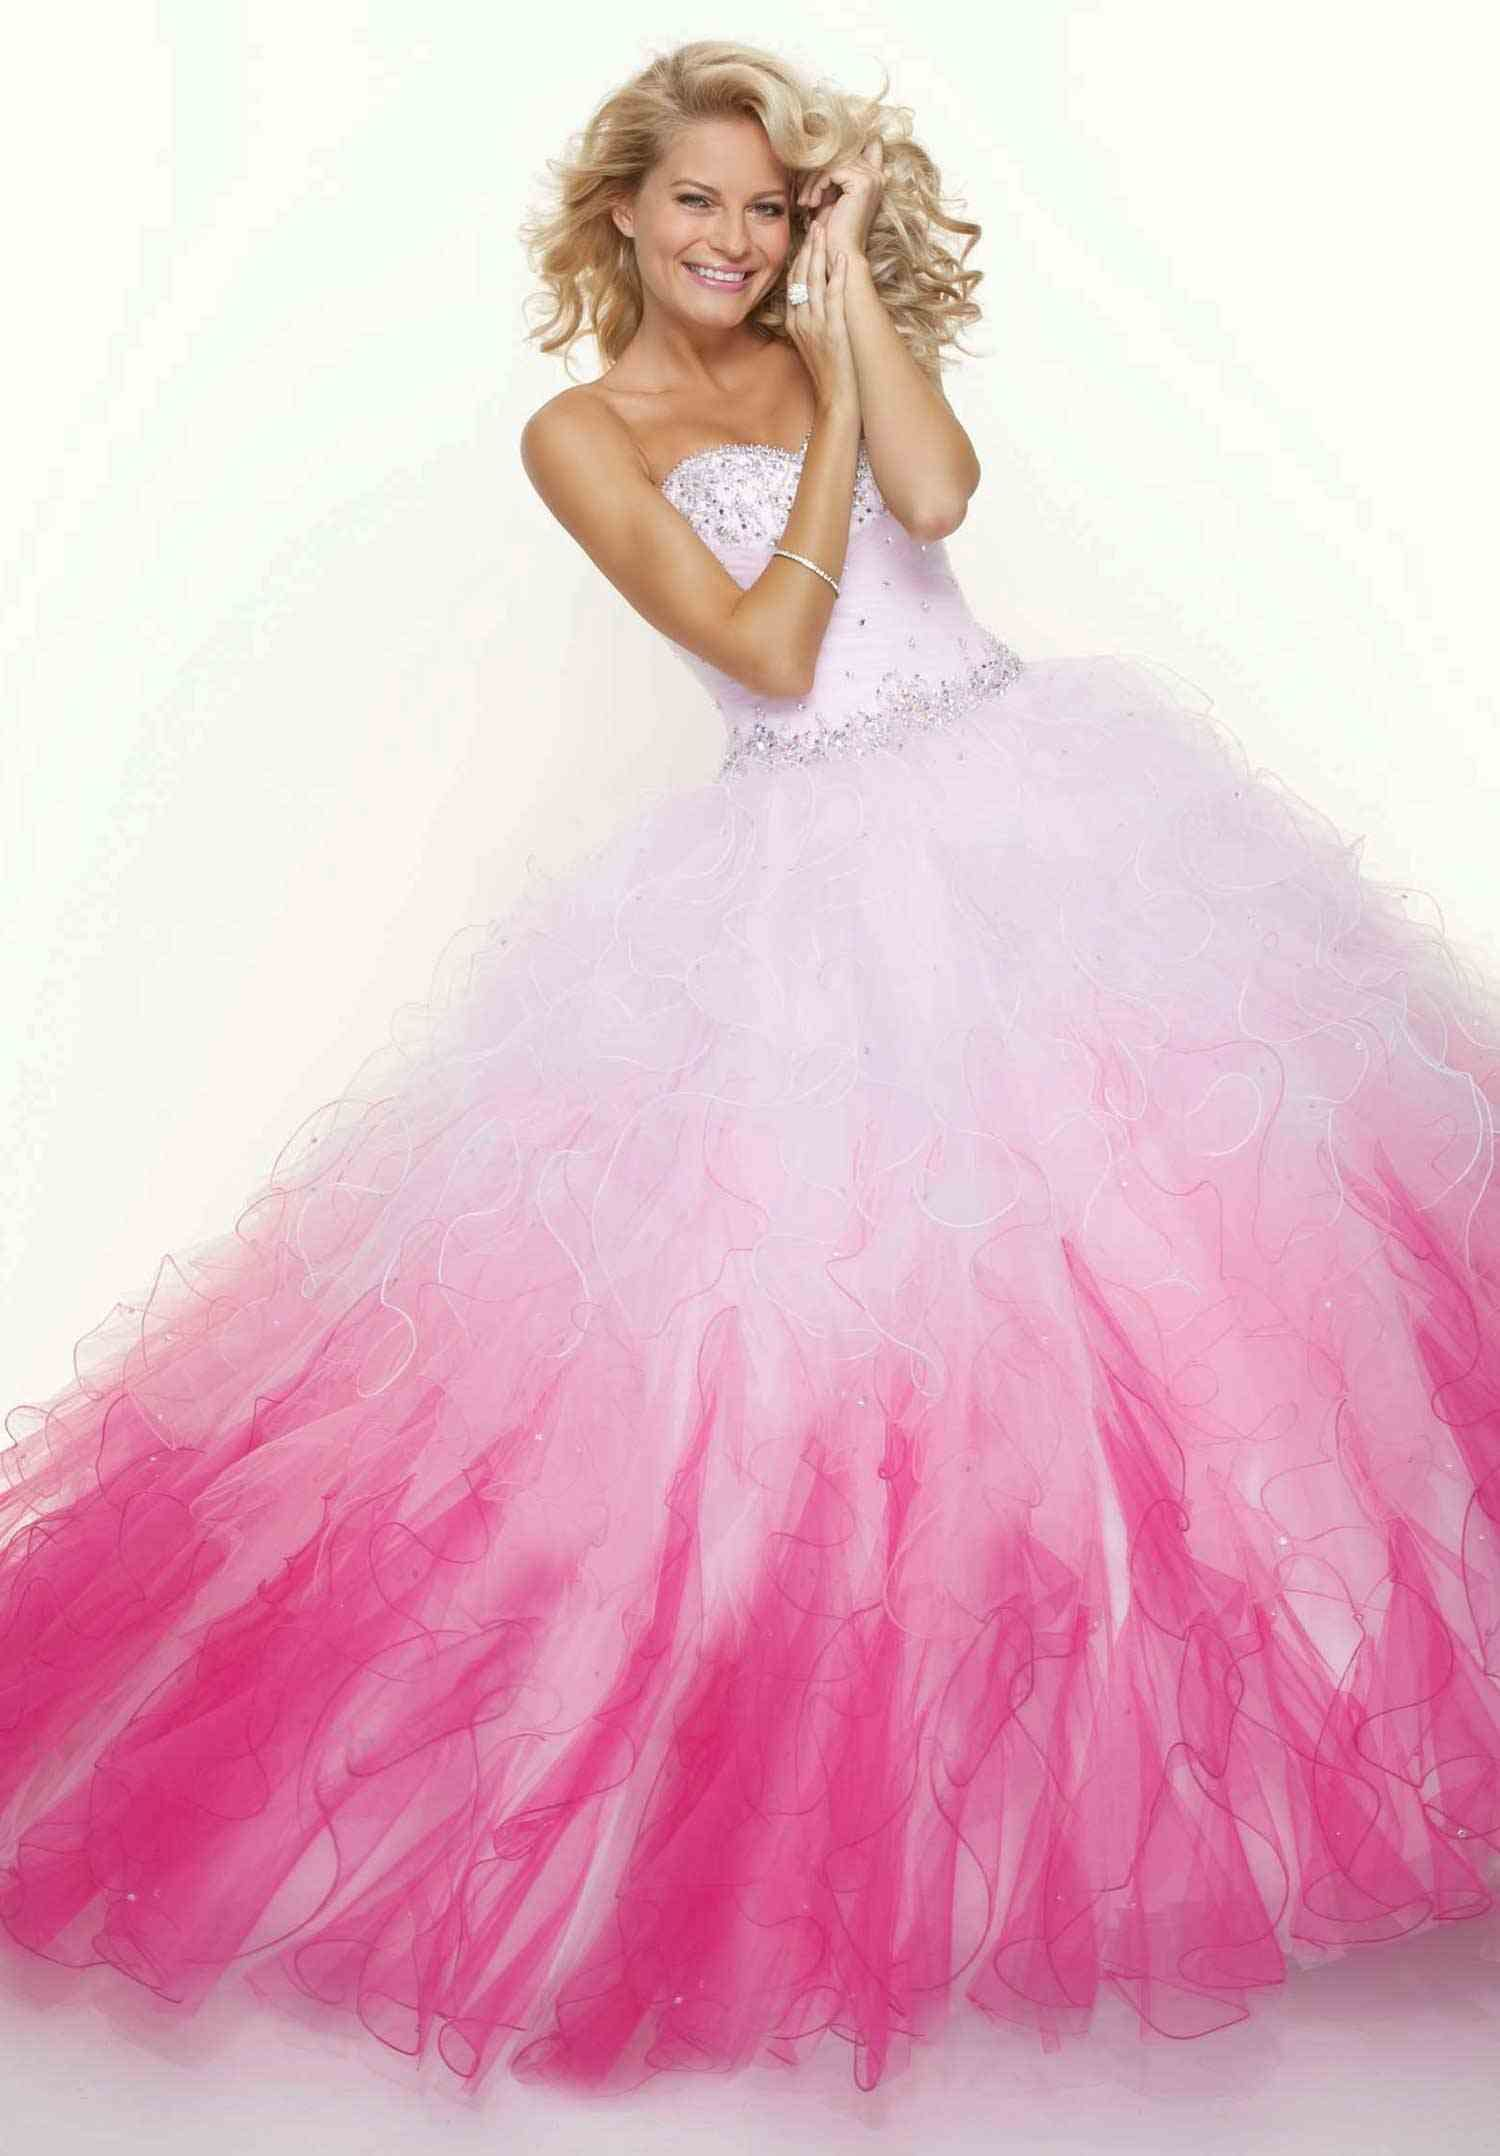 Pink Cinderella Prom Dress | Prom Dresses | Pinterest | Prom, Gowns ...